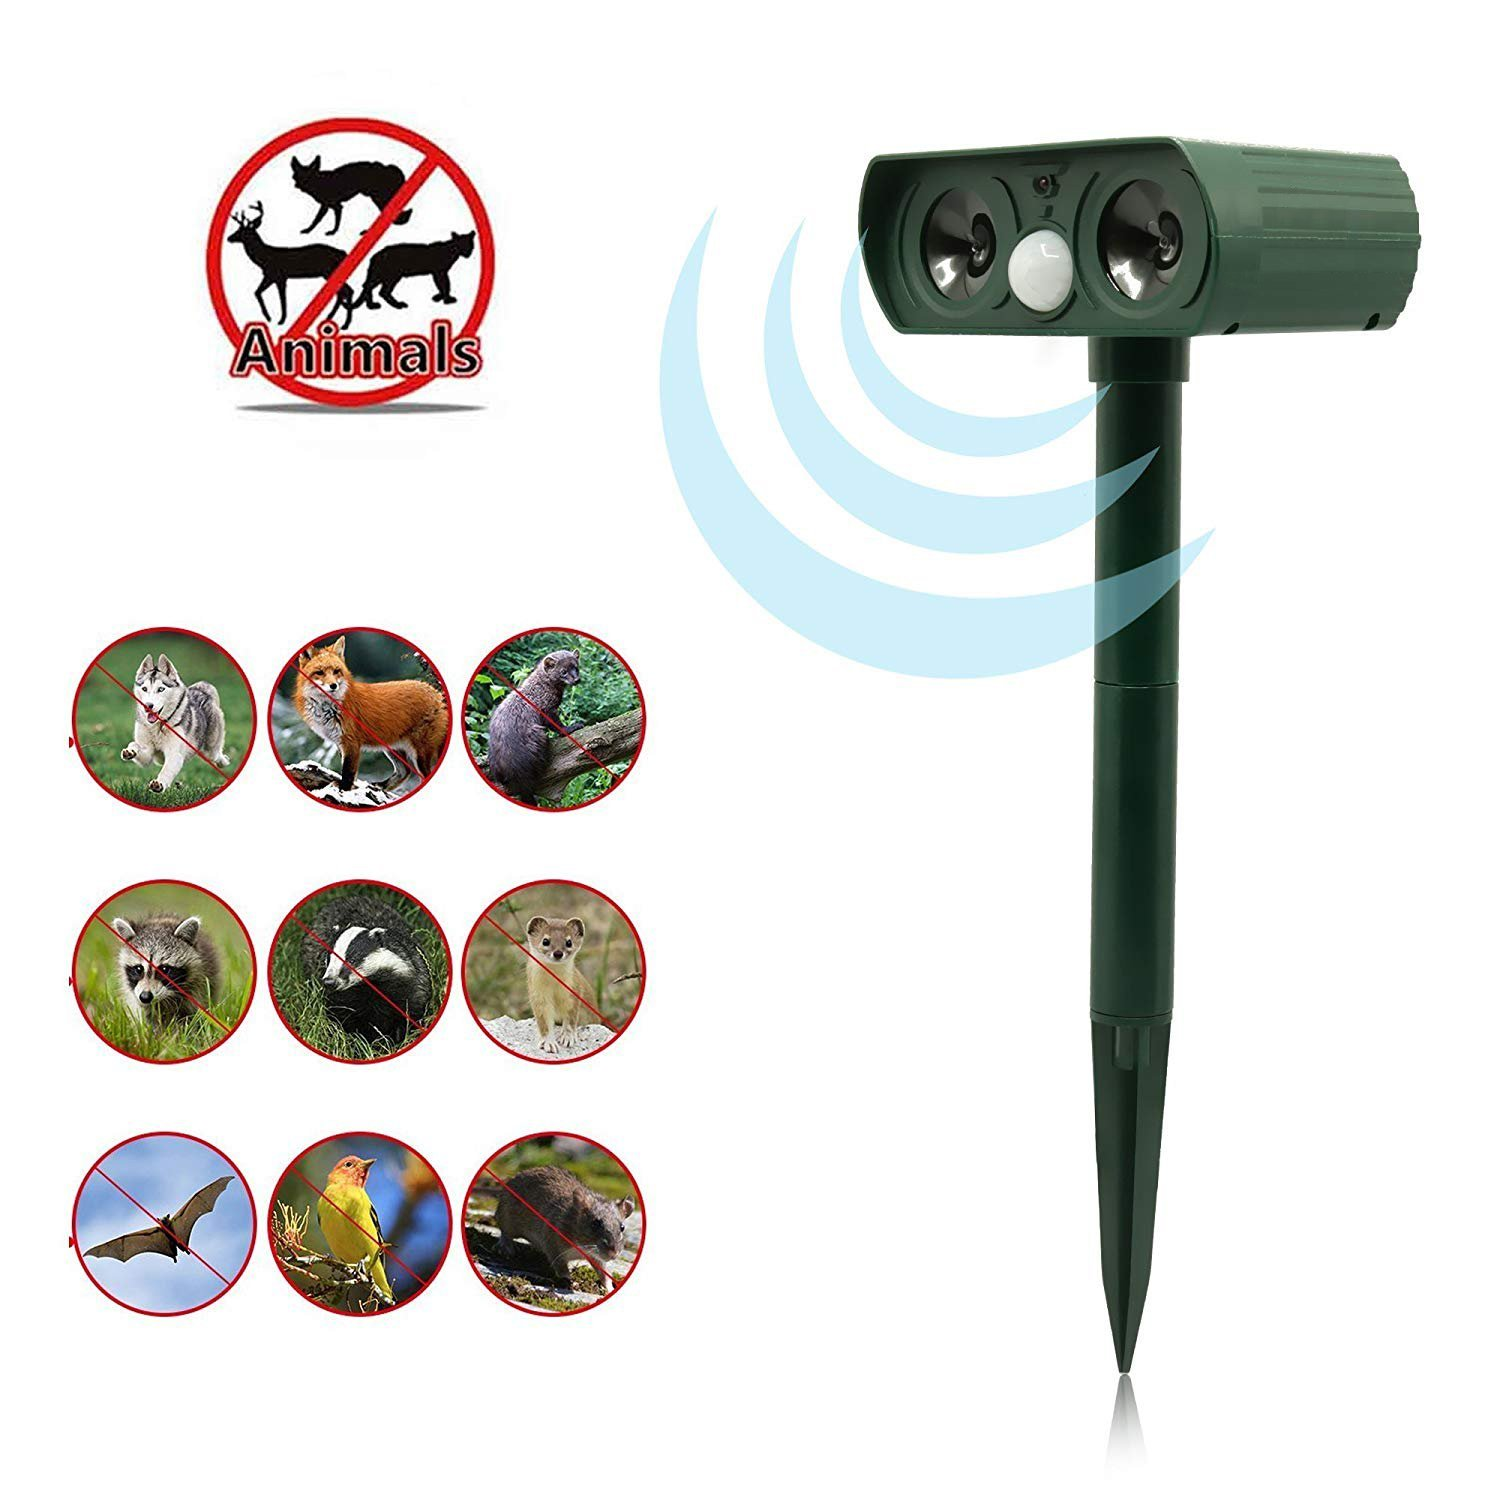 PetIsay Ultrasonic Animal Repeller, Solar Powered repellent with Motion Sensor Ultrasonic and Red Flashing lights Outdoor Waterproof Farm Garden Yard, Cats, Dogs, Foxes, Birds, Skunks, rodents